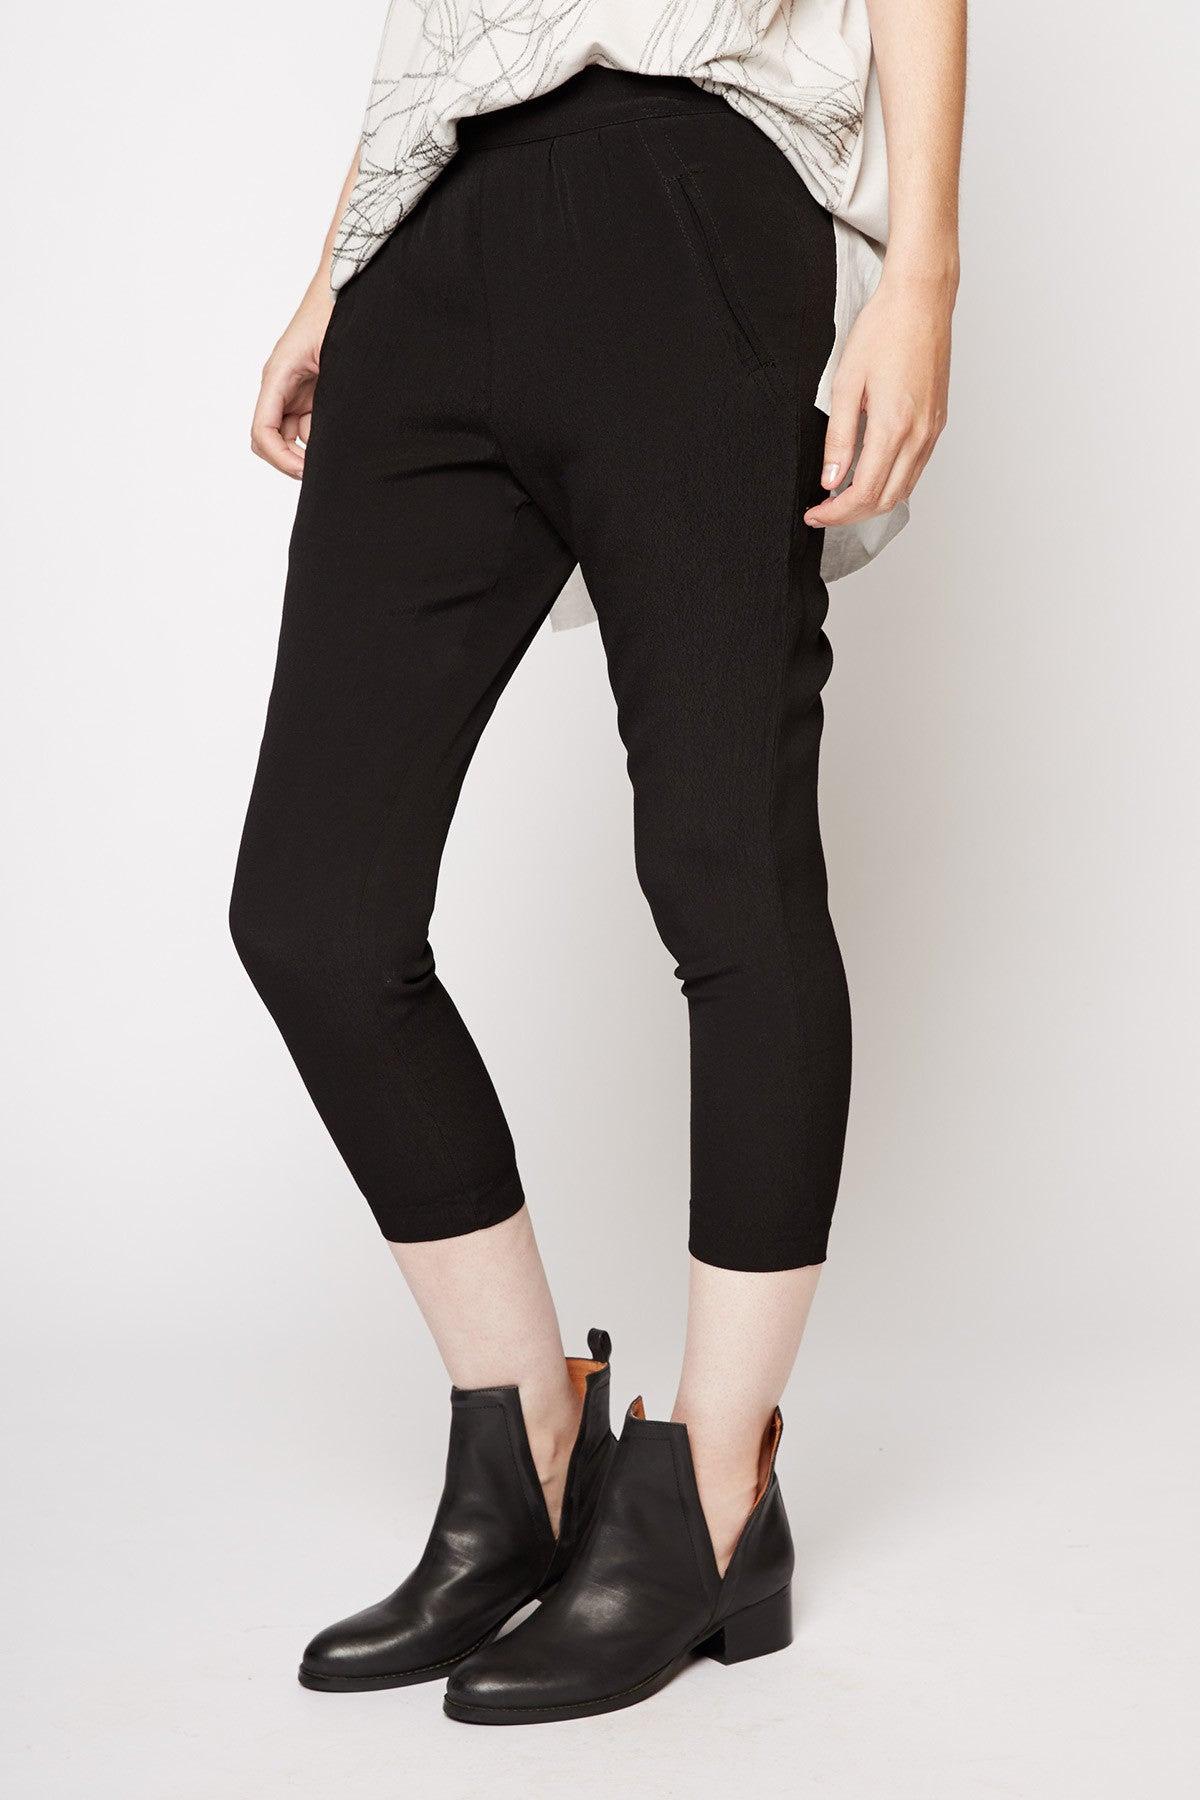 Willow & Clay Black Harem Pants